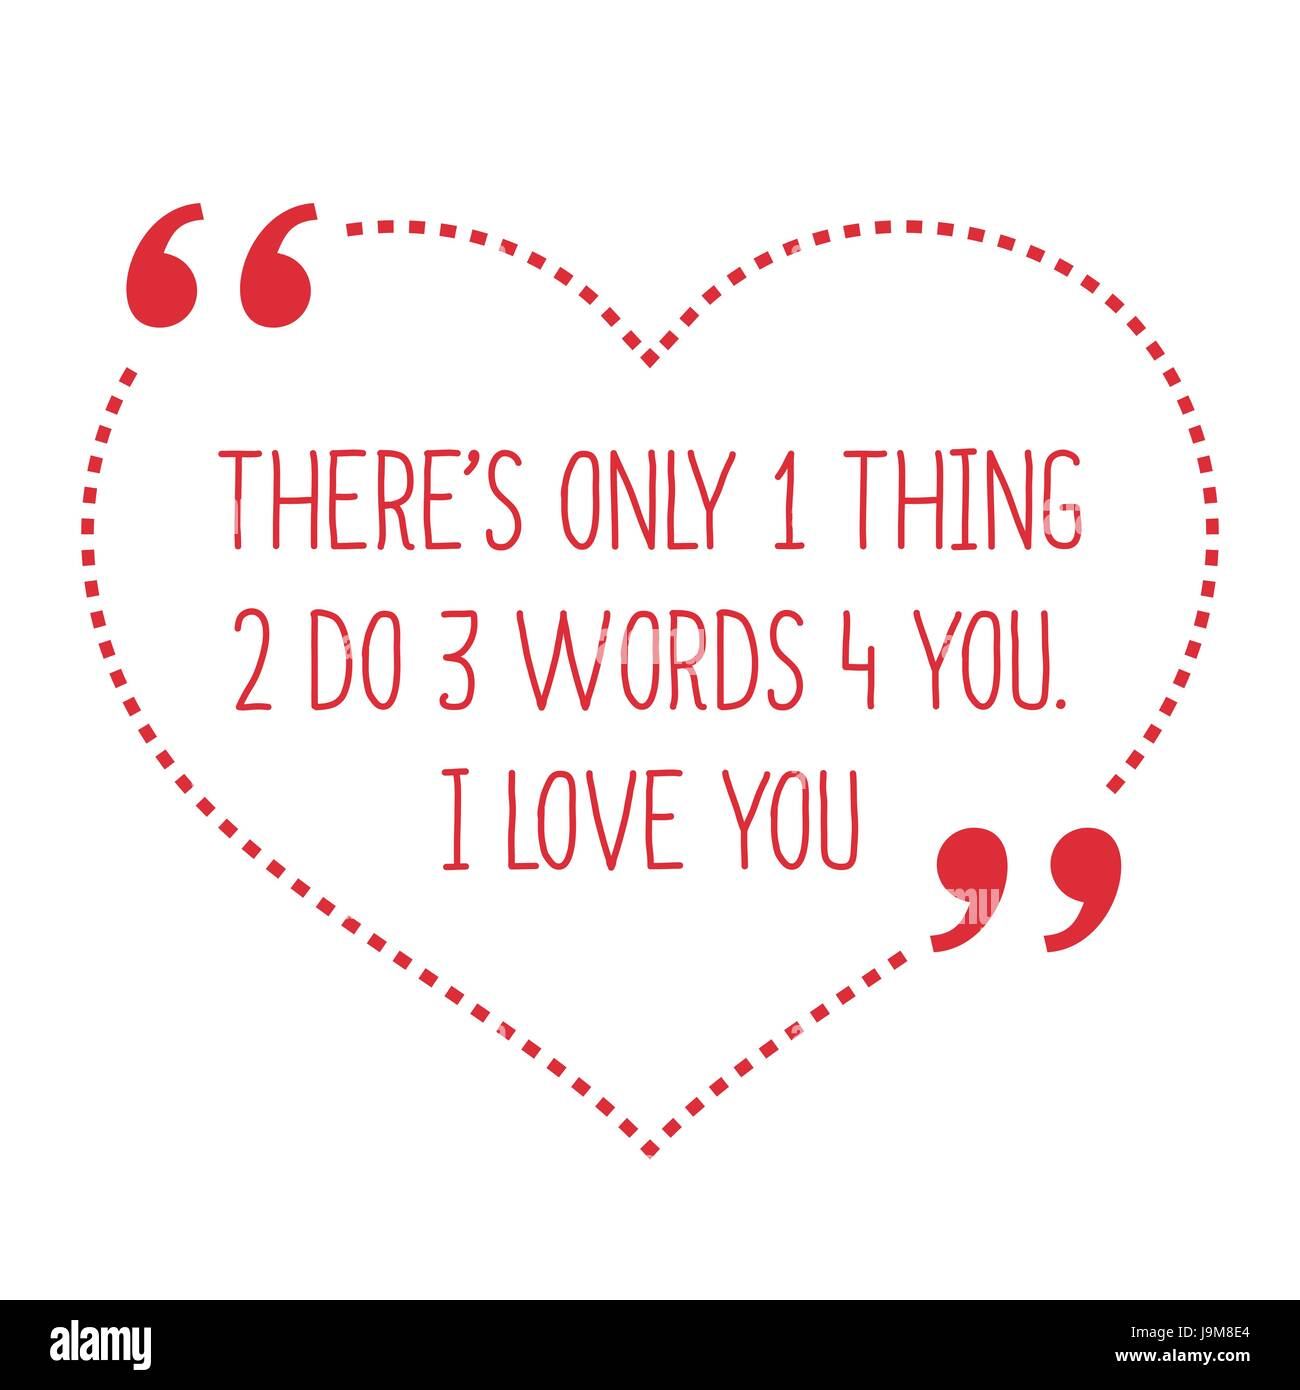 Funny Love Quote. Thereu0027s Only 1 Thing 2 Do 3 Words 4 You. I Love You.  Simple Trendy Design